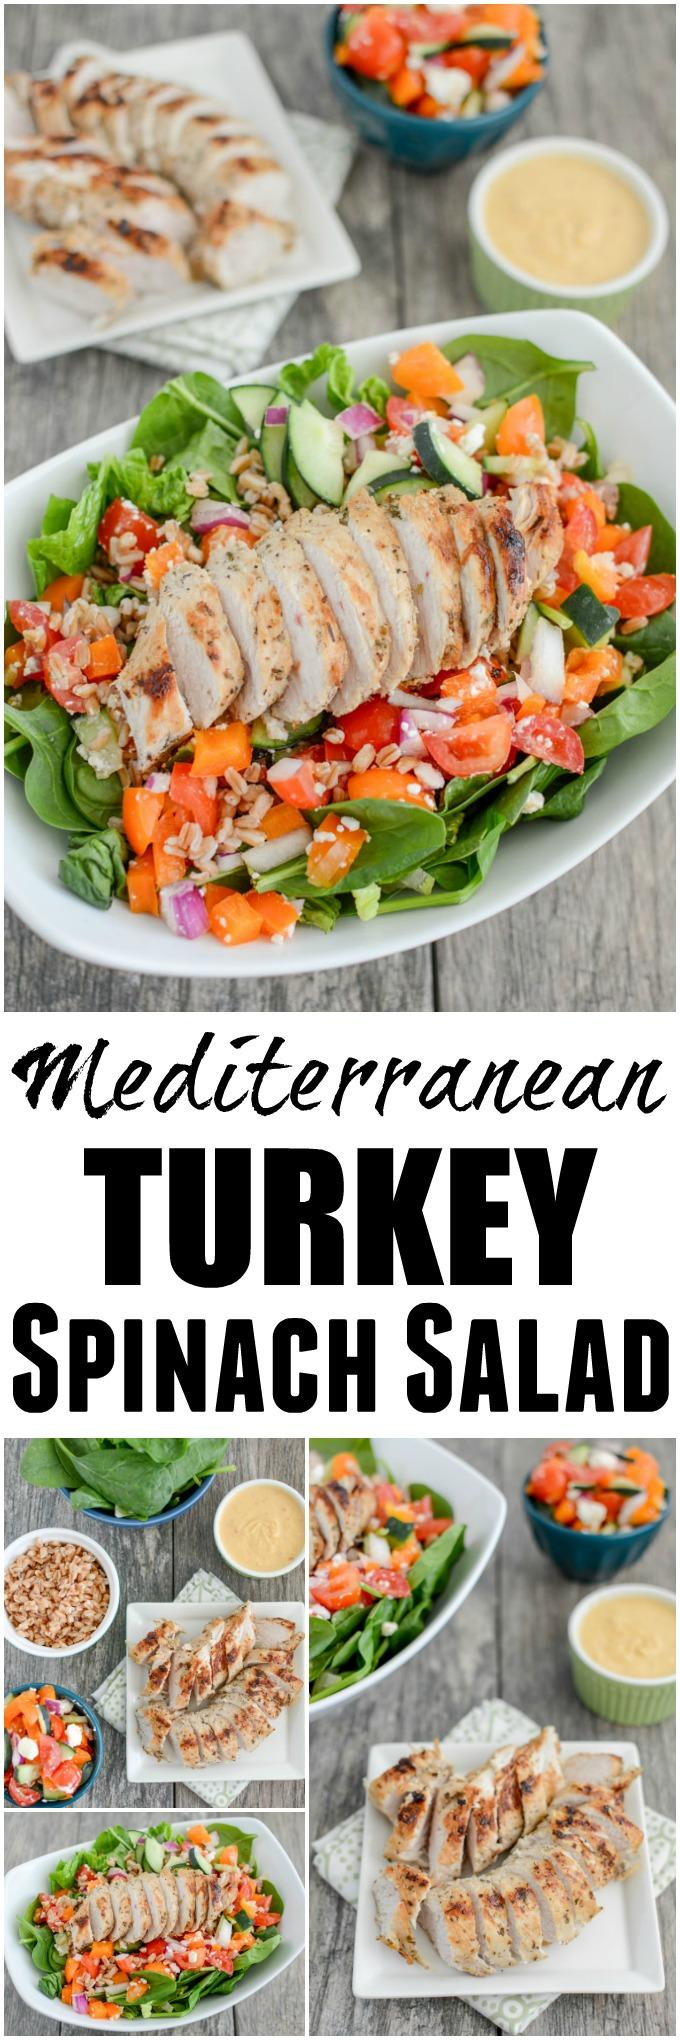 This Mediterranean Turkey Spinach Salad recipe is packed with protein and flavor! Prep the components ahead of time and assemble for a quick, healthy lunch or dinner!